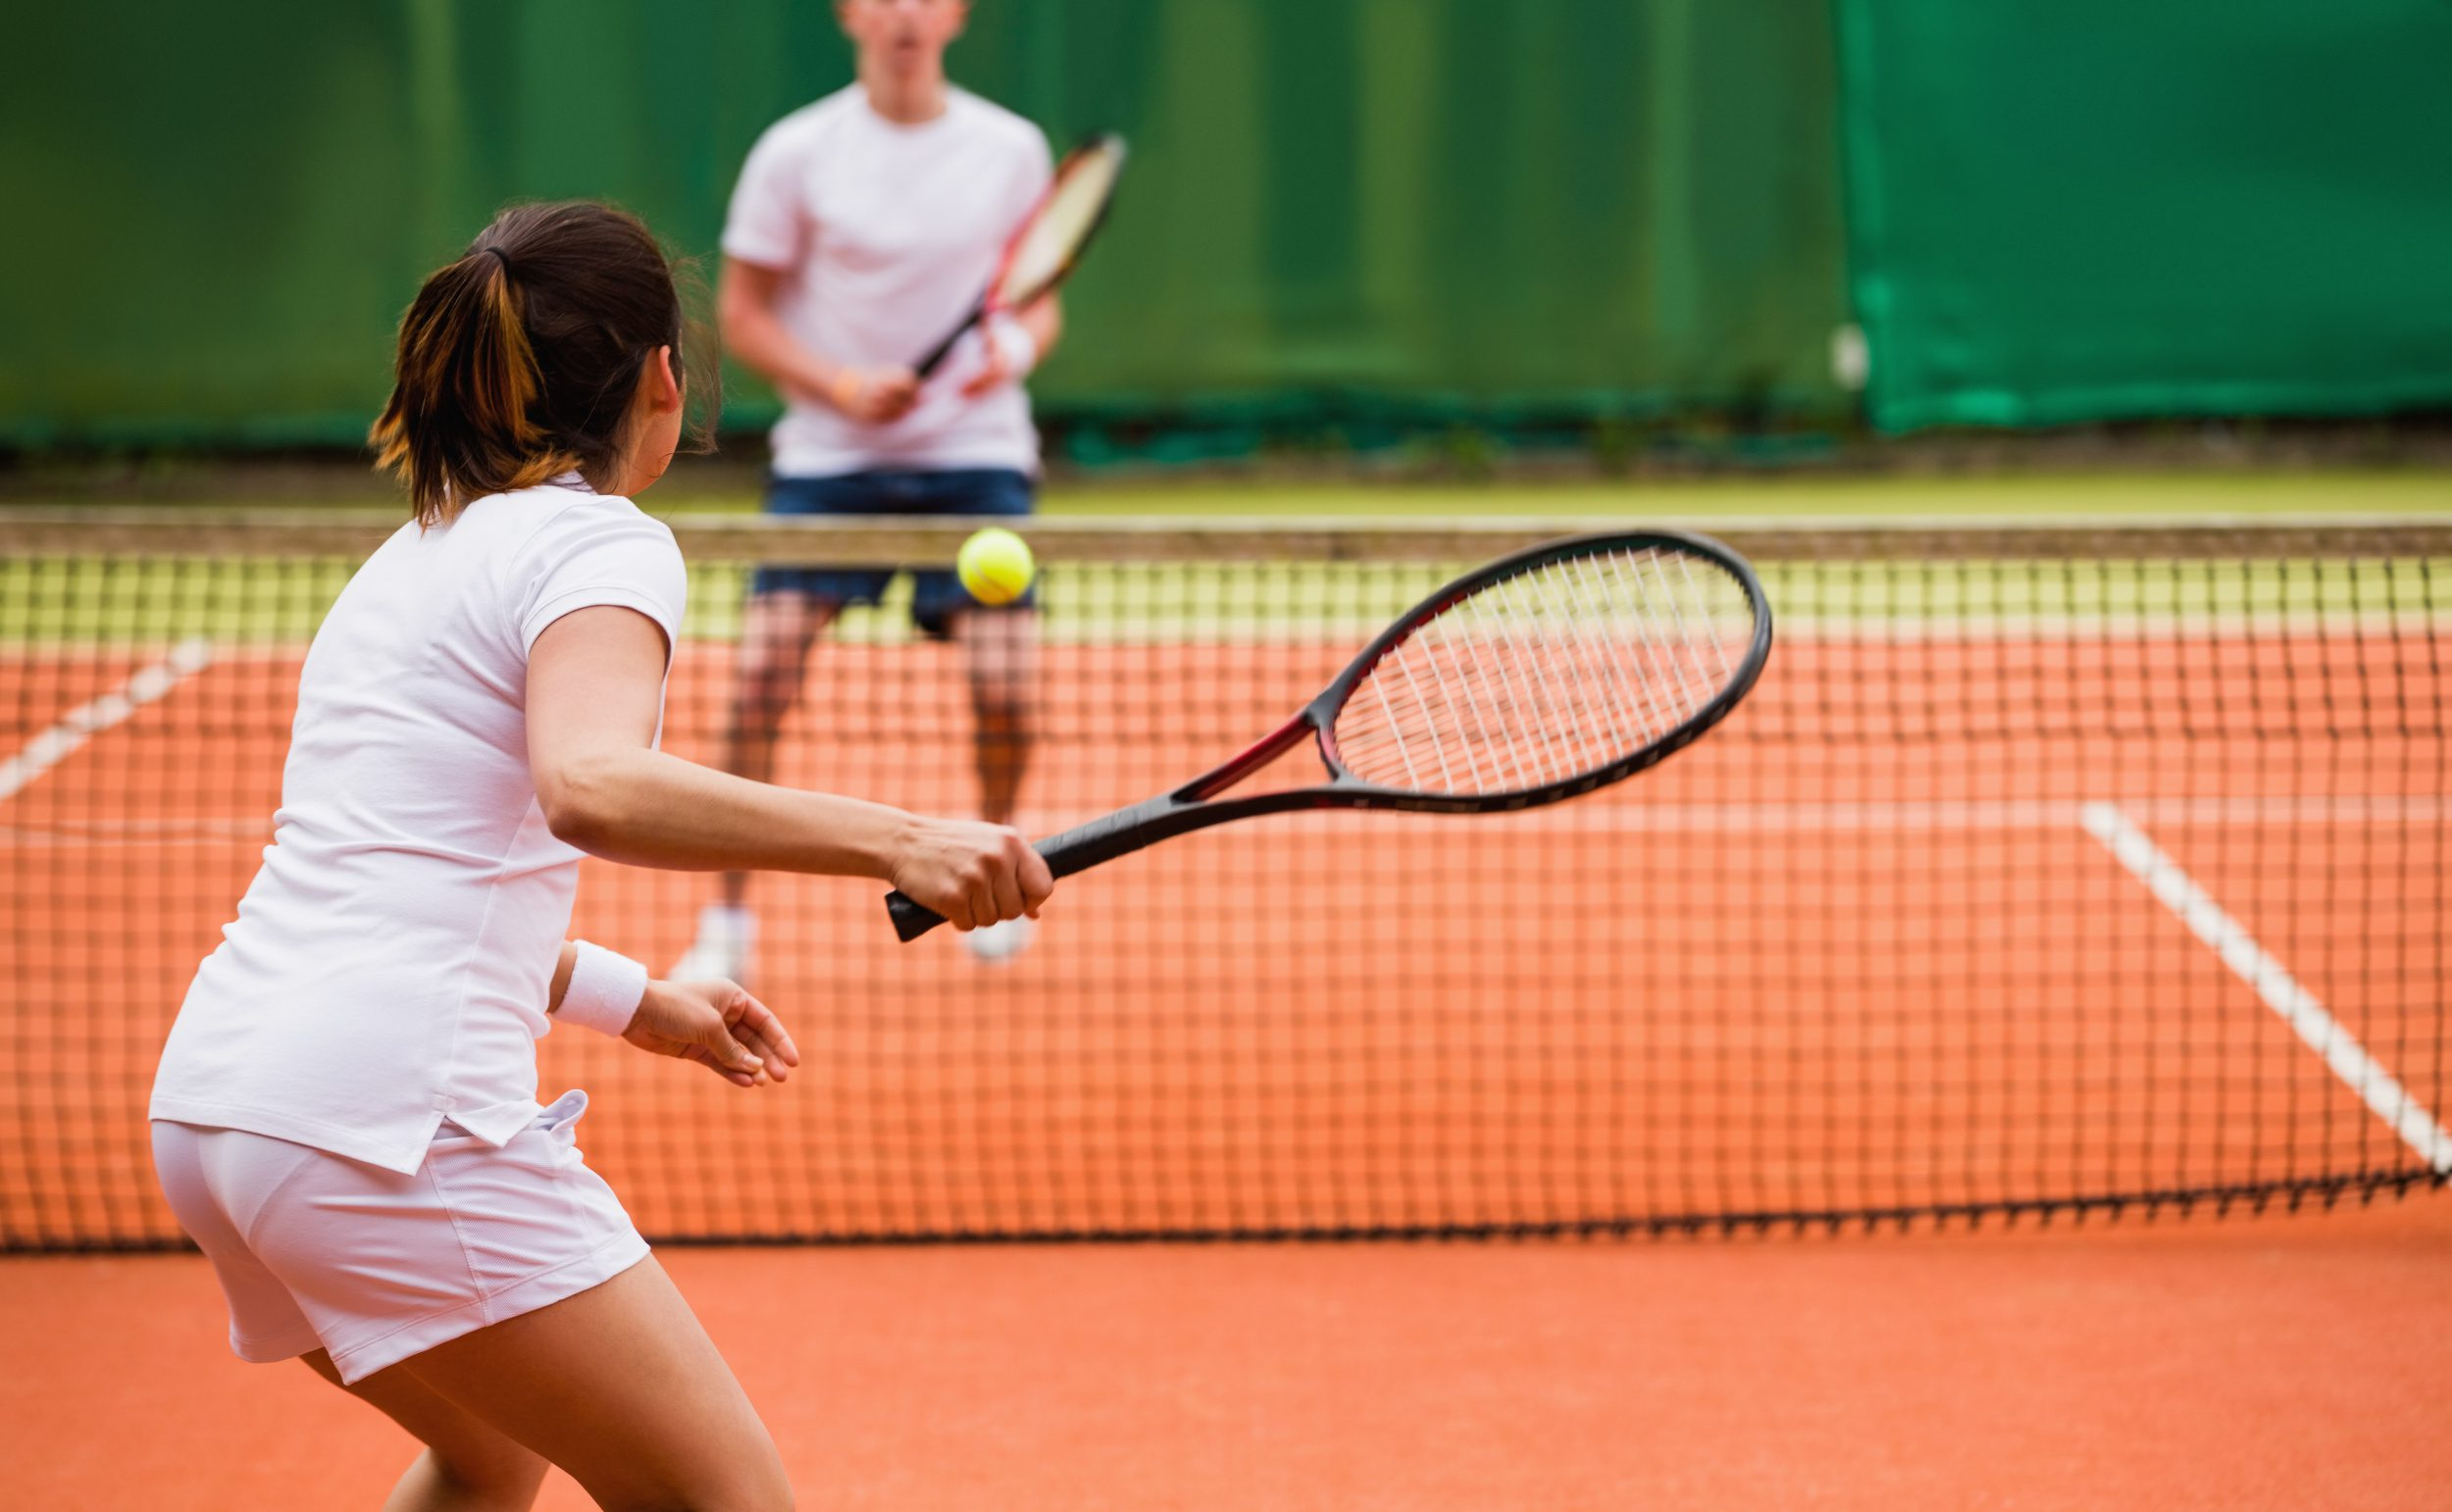 Tennis | All the action from the casino floor: news, views and more